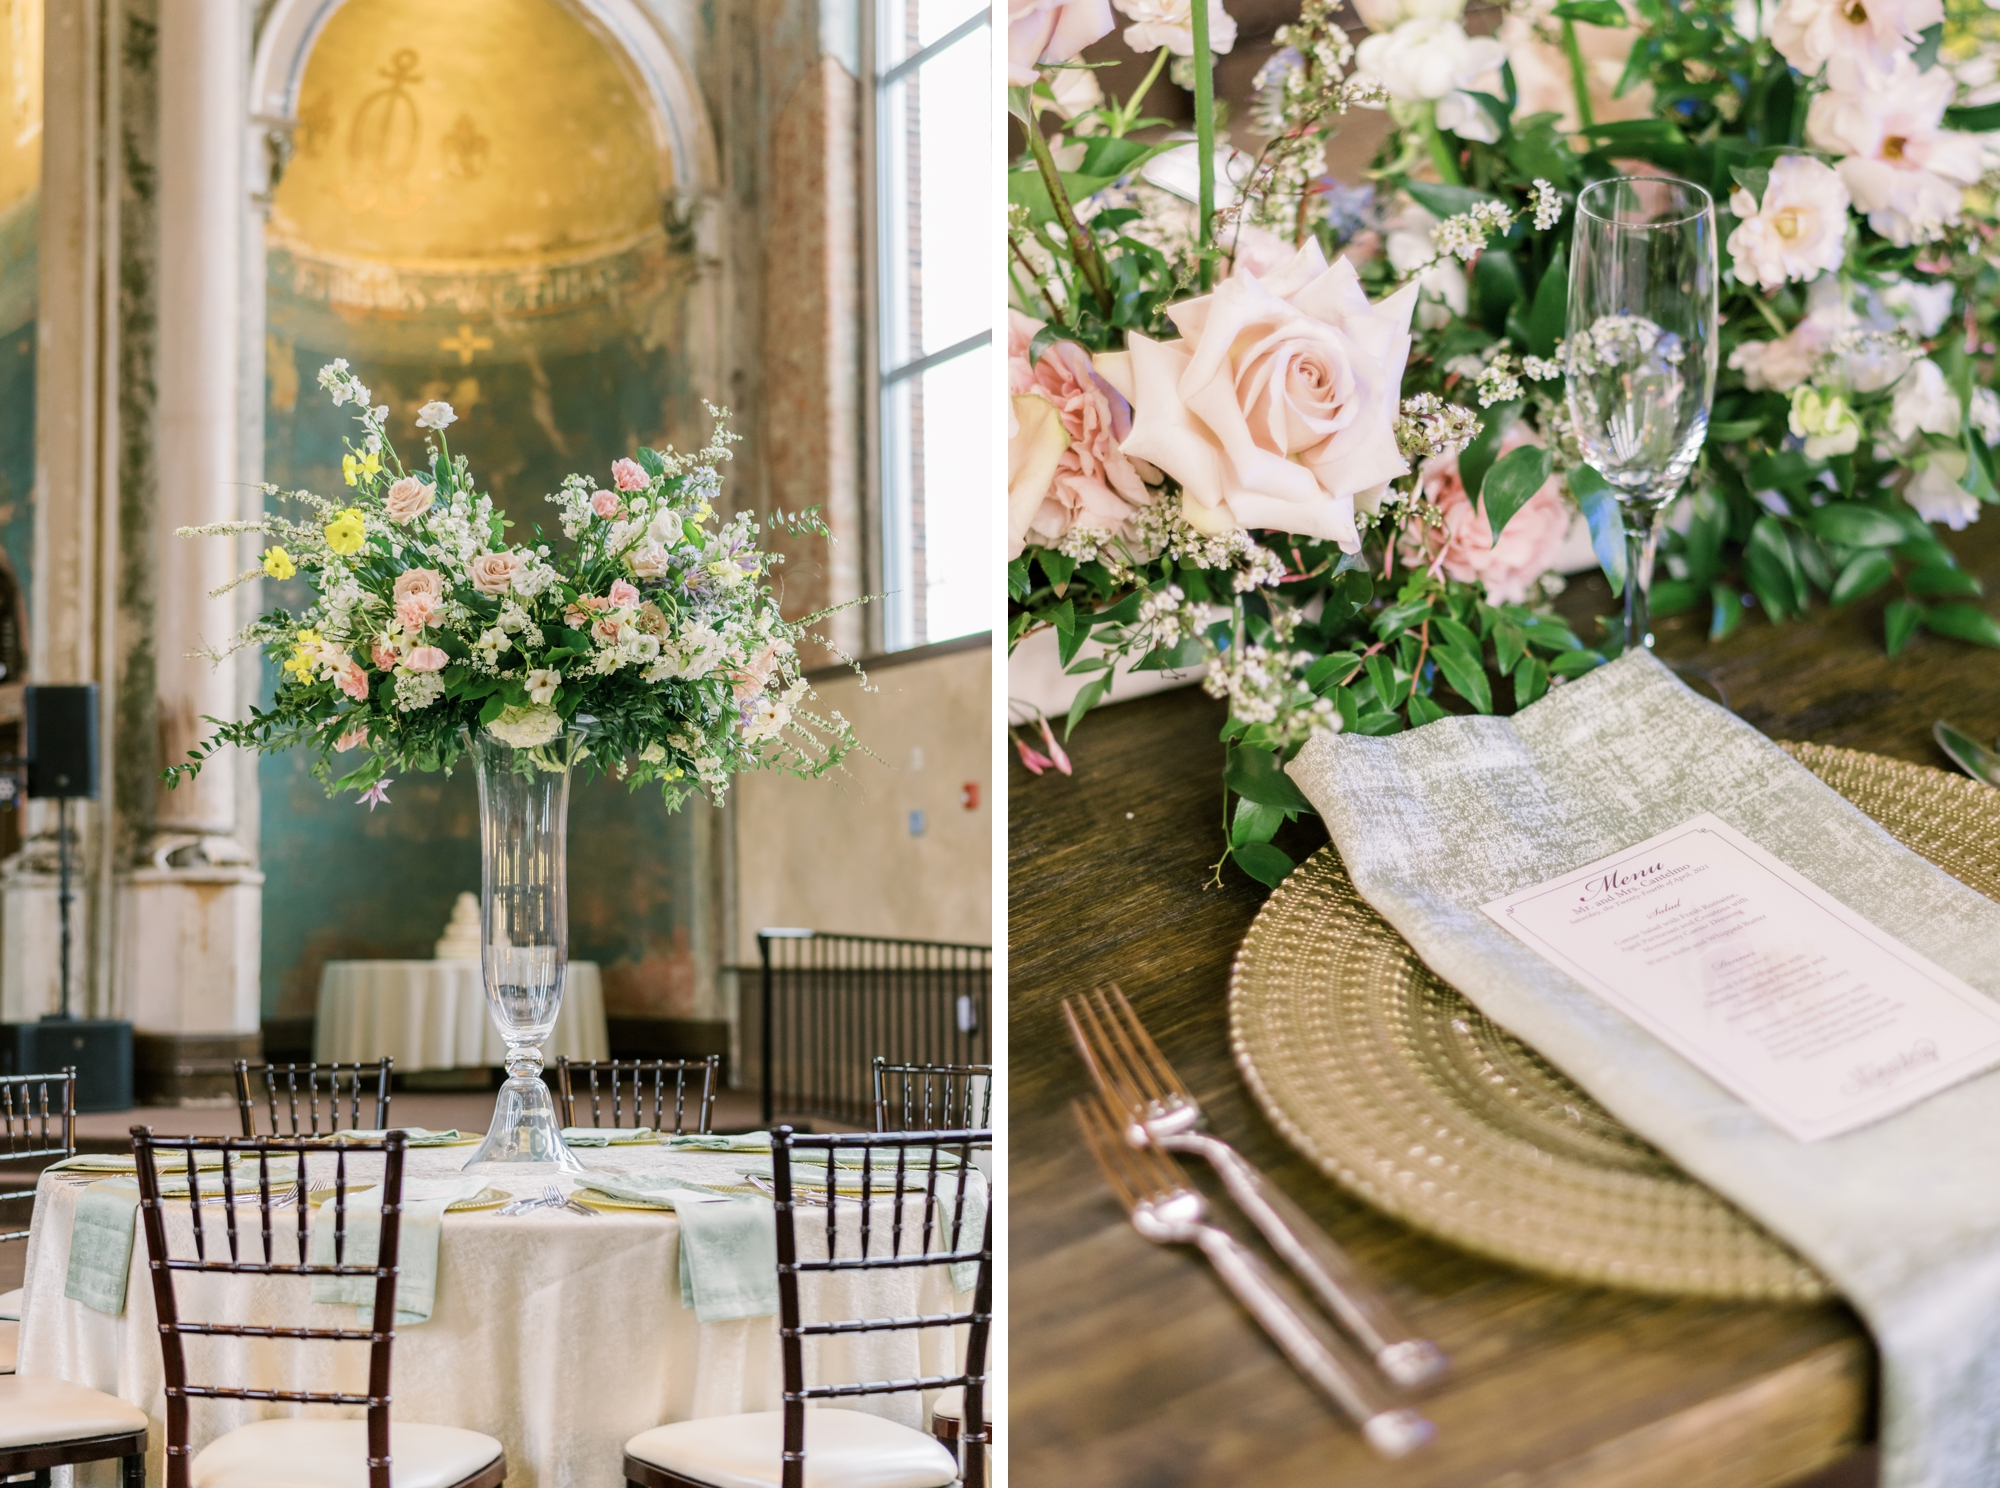 Place setting at wedding featuring a gold charger, menu card and floral centerpiece